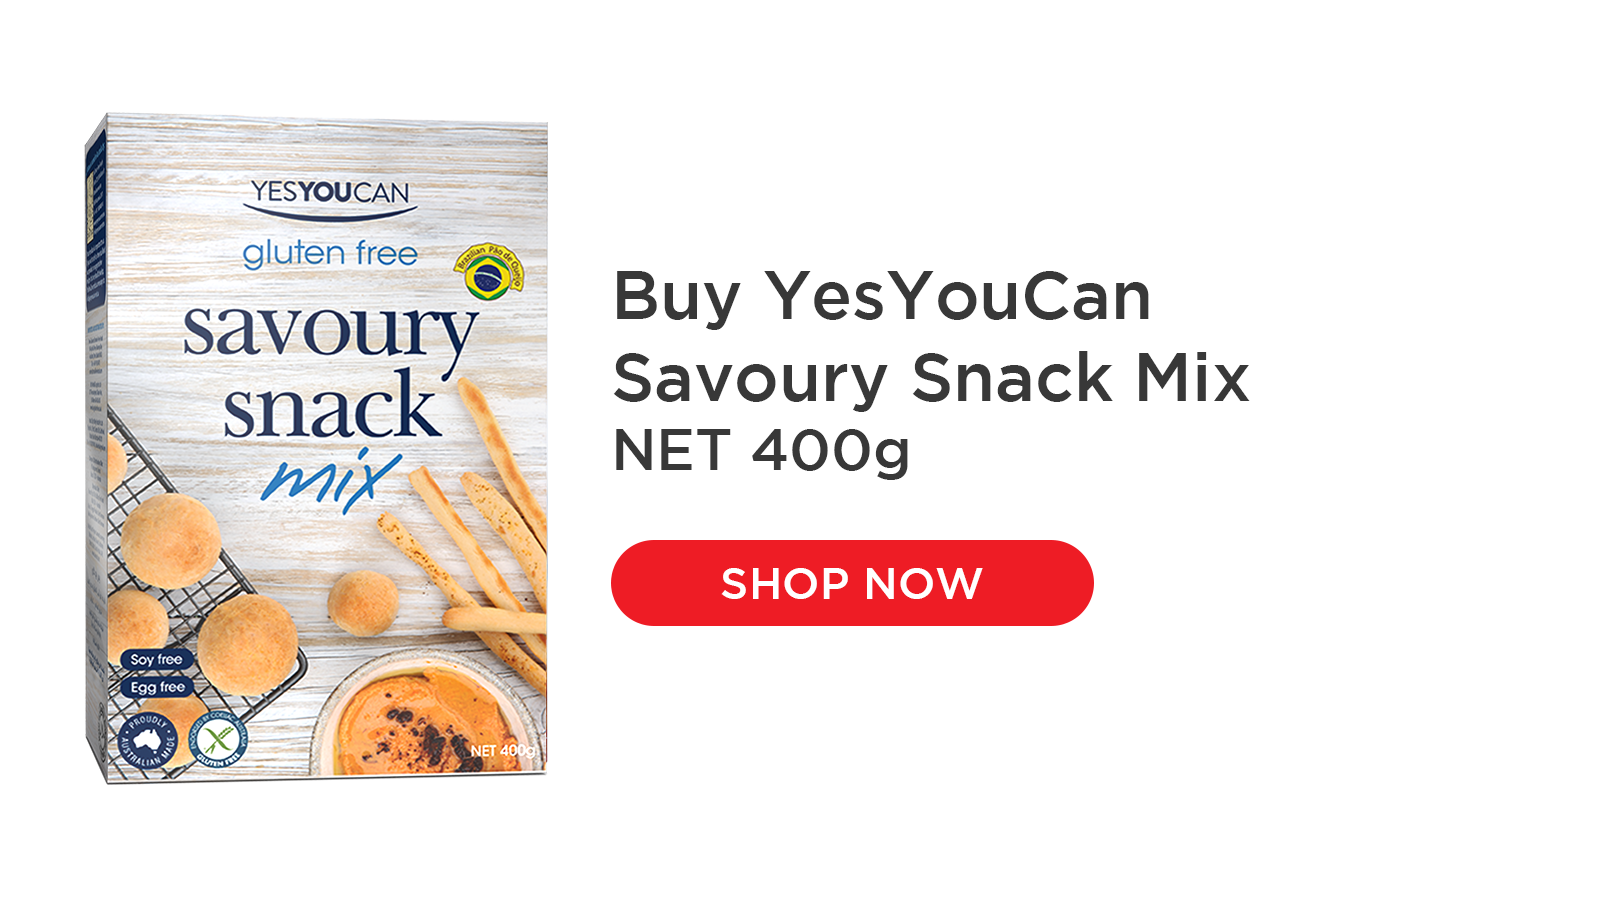 YesYouCan Savoury Snack Mix makes P̣ao de Queijo, Brazil's famous gluten free cheese bread snacks. It is crunchy on the outside and cheesy and gooey on the inside. It is easy to prepare and great for parties, snacks or school lunchboxes.